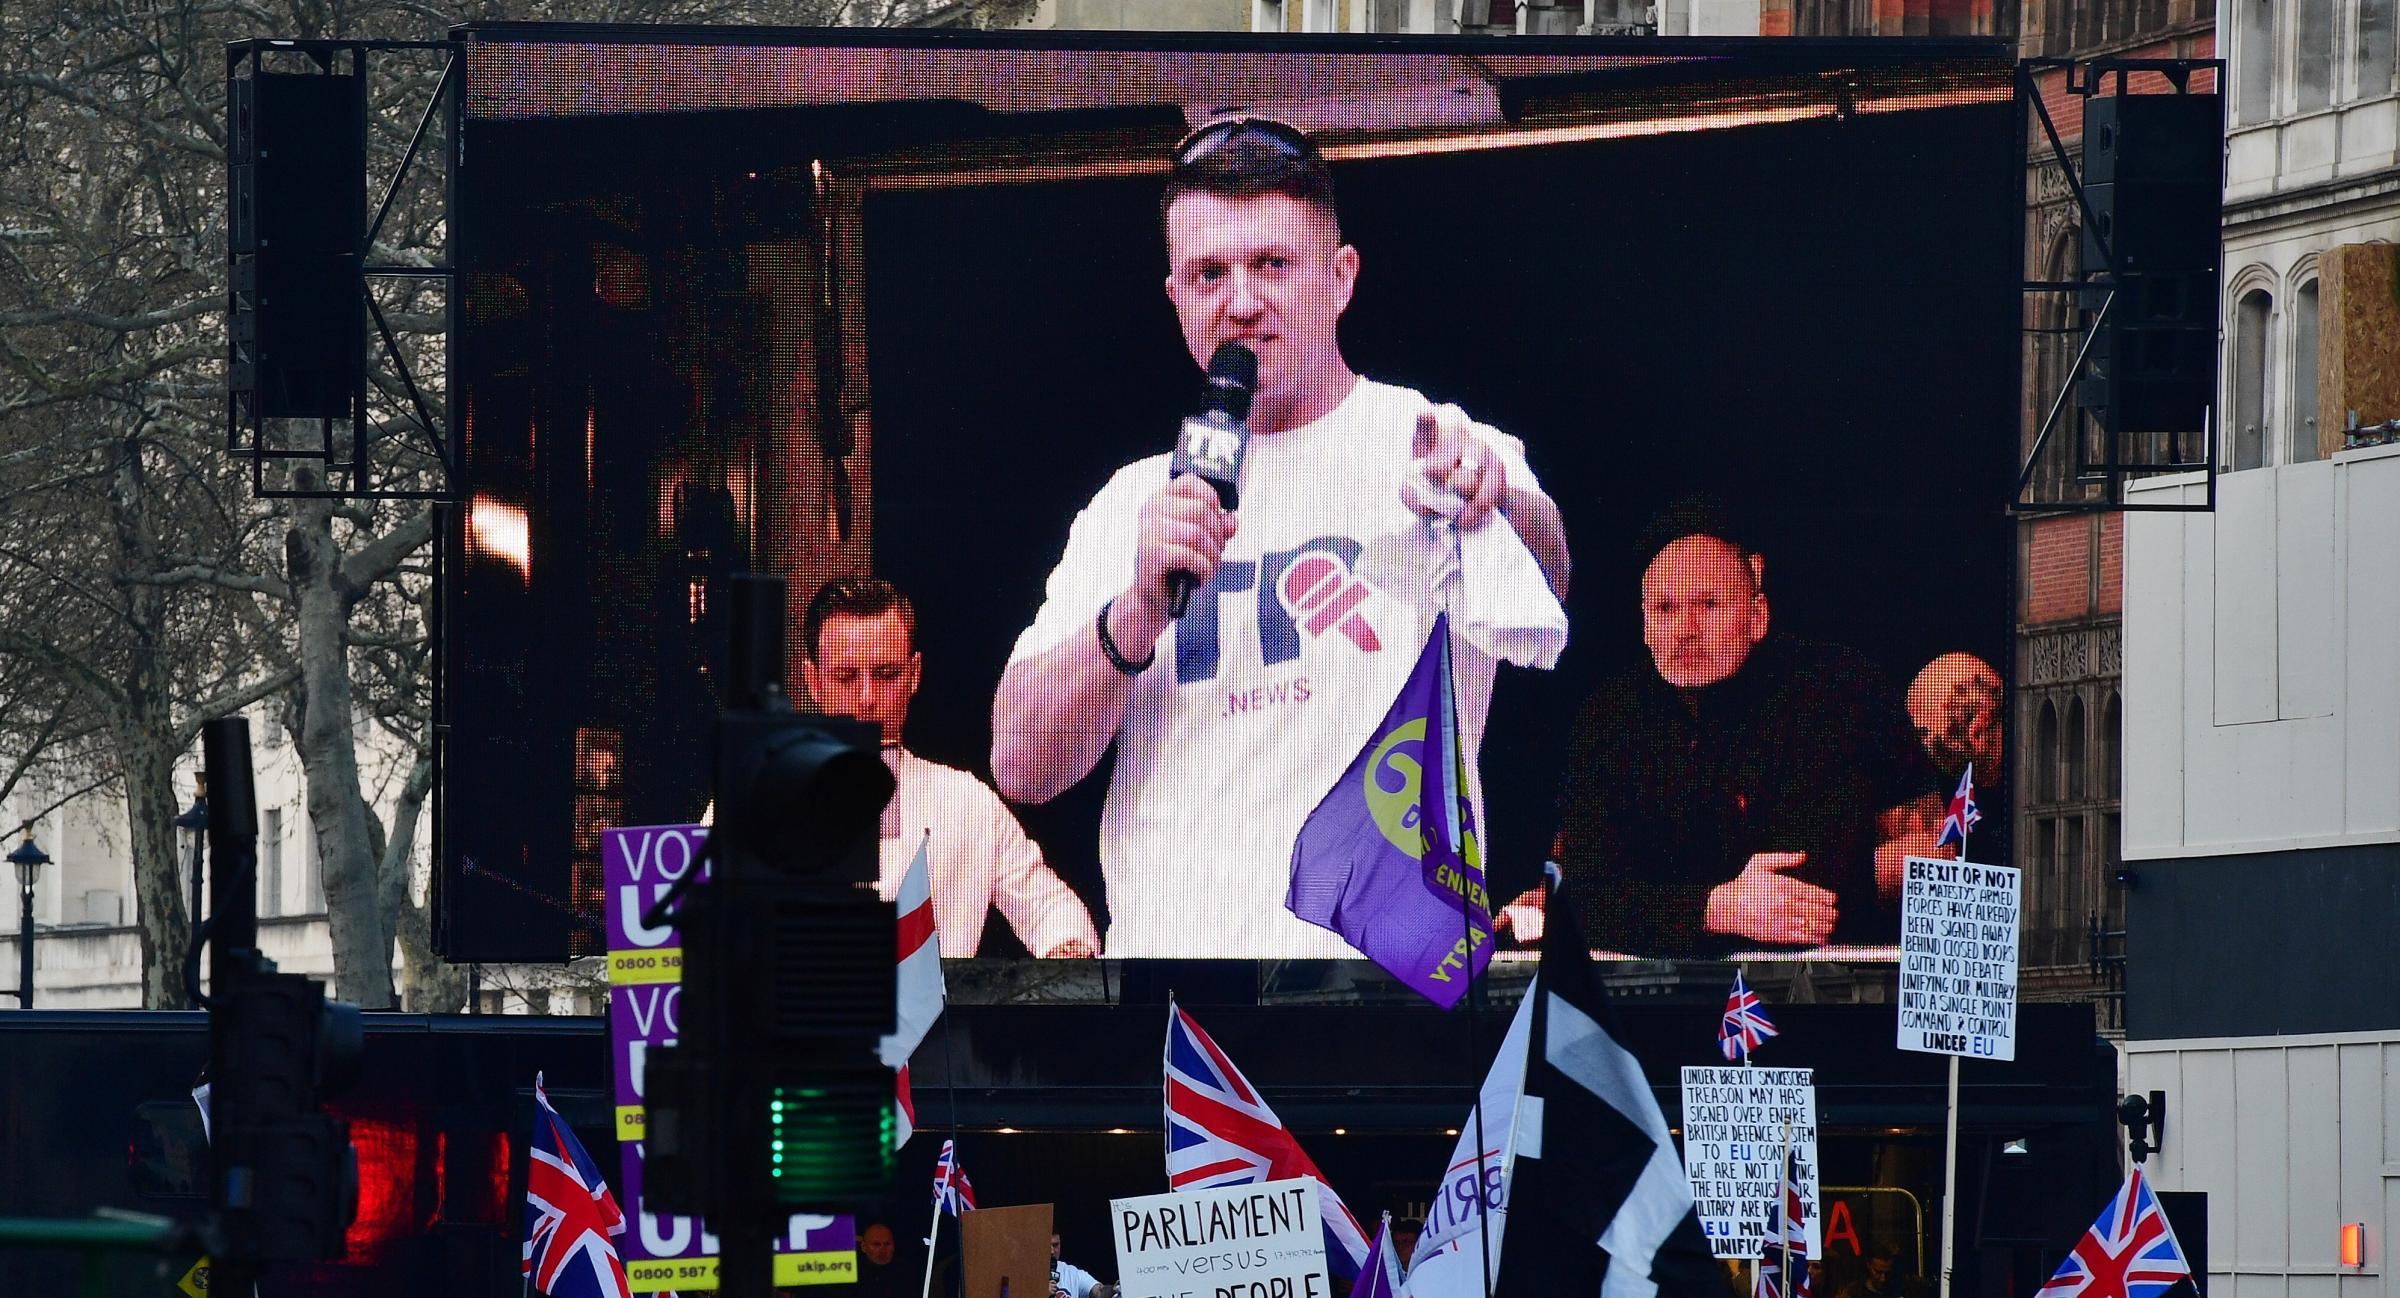 People like Tommy Robinson most loudly assert their freedom of speech is under threat